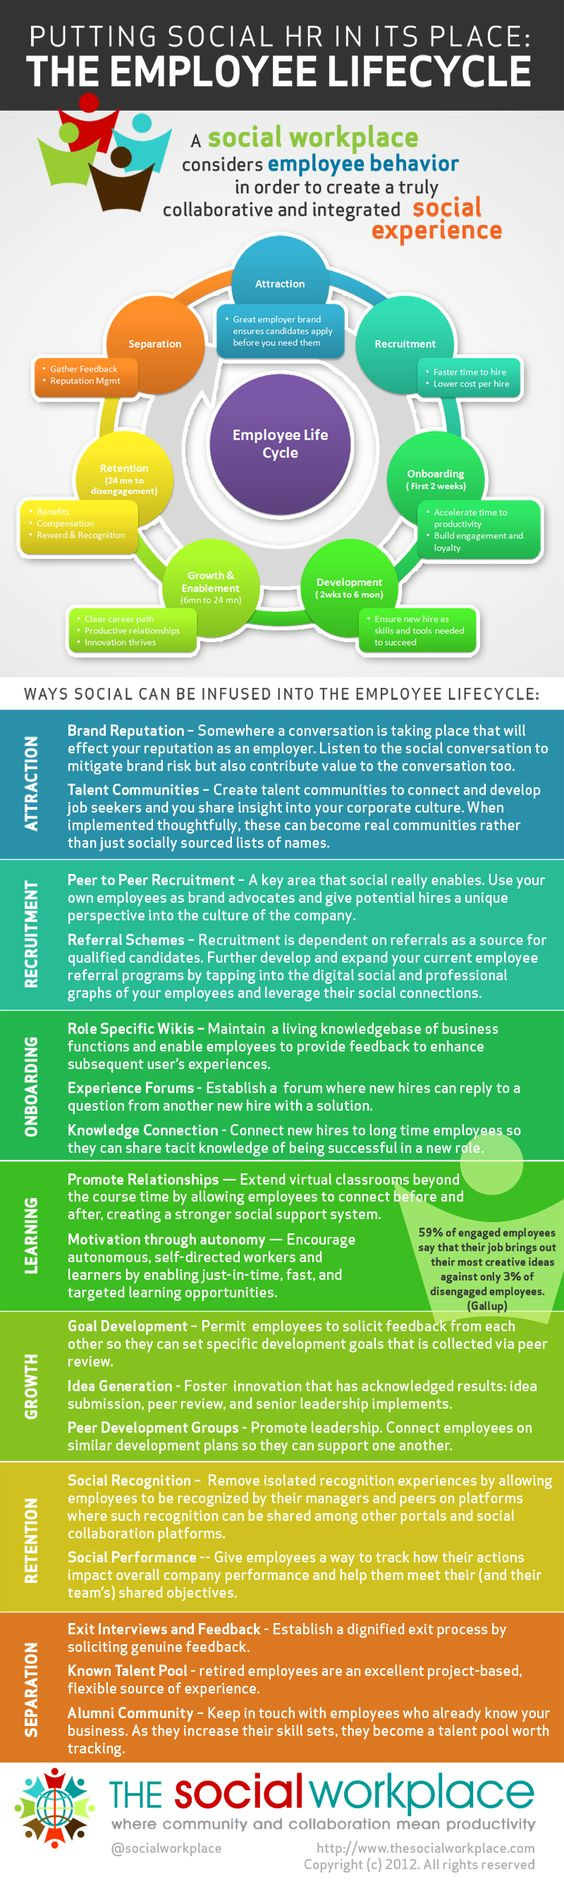 Social HR and the Employee Lifecycle by The Social Workplace #socbiz #hr